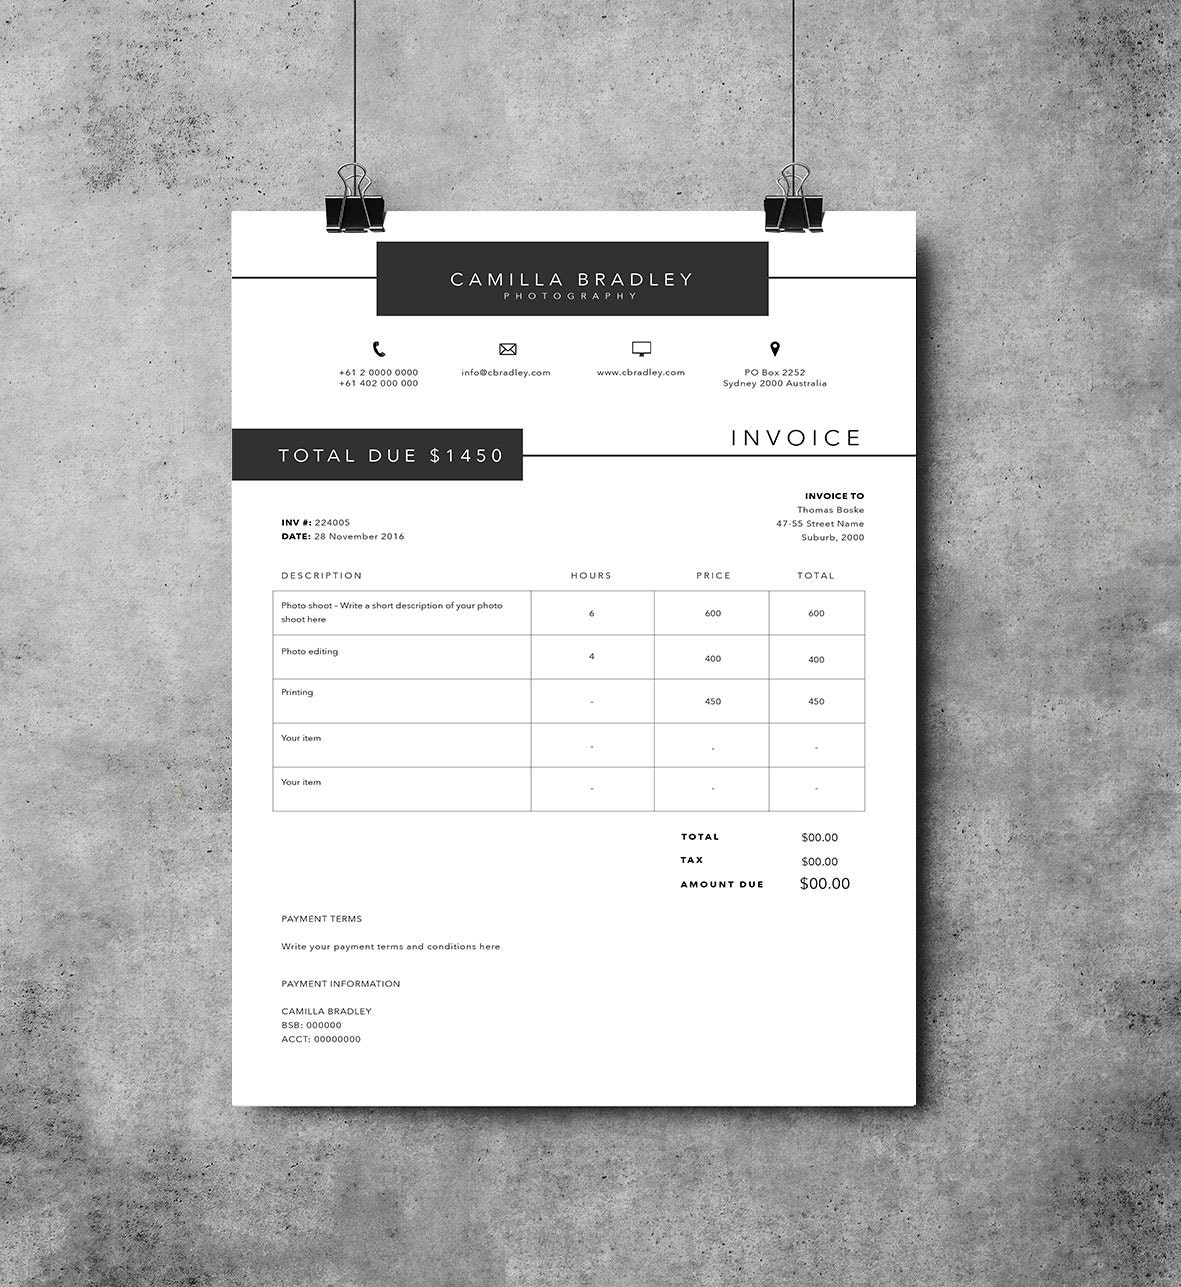 Photography Invoice Template Invoice Design Receipt - Word templates invoice women's clothing online stores